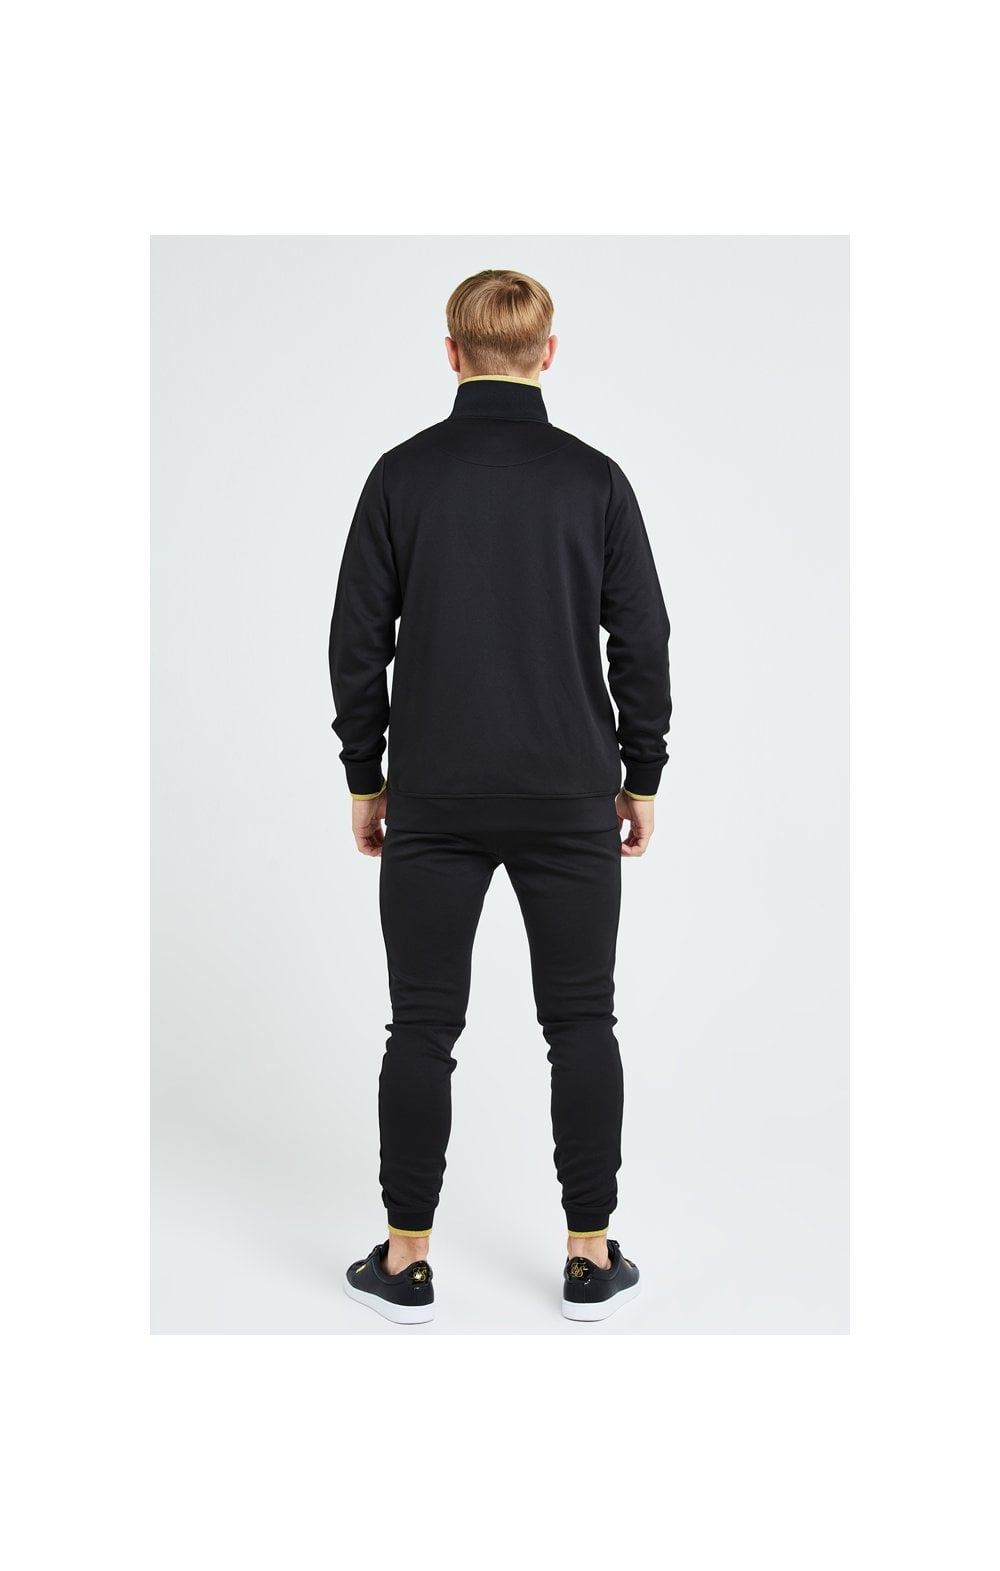 Illusive London Sovereign 1/4 Zip Hoodie  - Black & Gold (6)